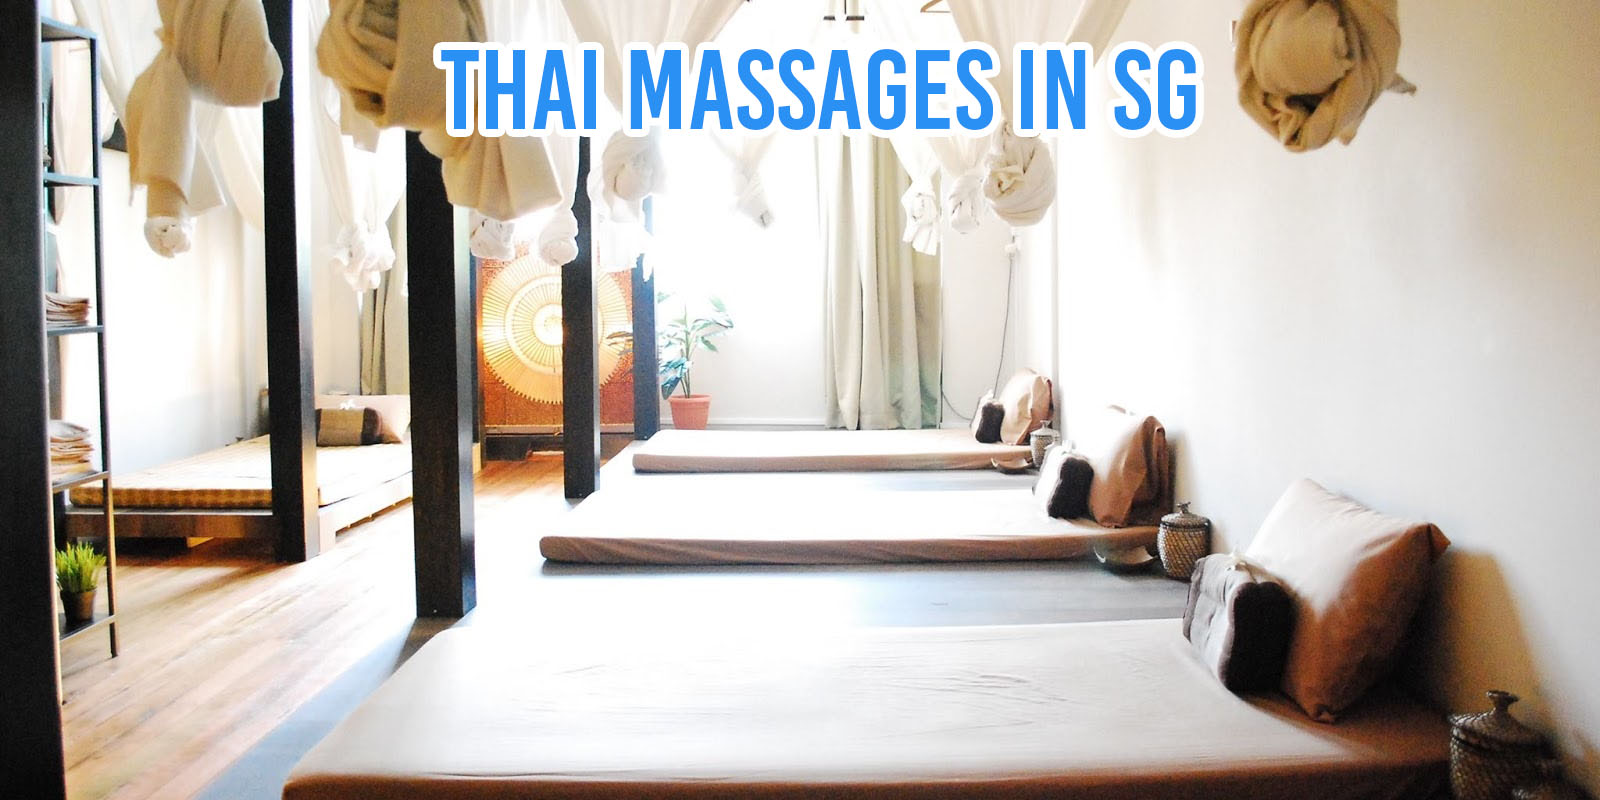 7 Thai Massage Parlours In Singapore From $45/Hour To Relieve Your Muscle Aches